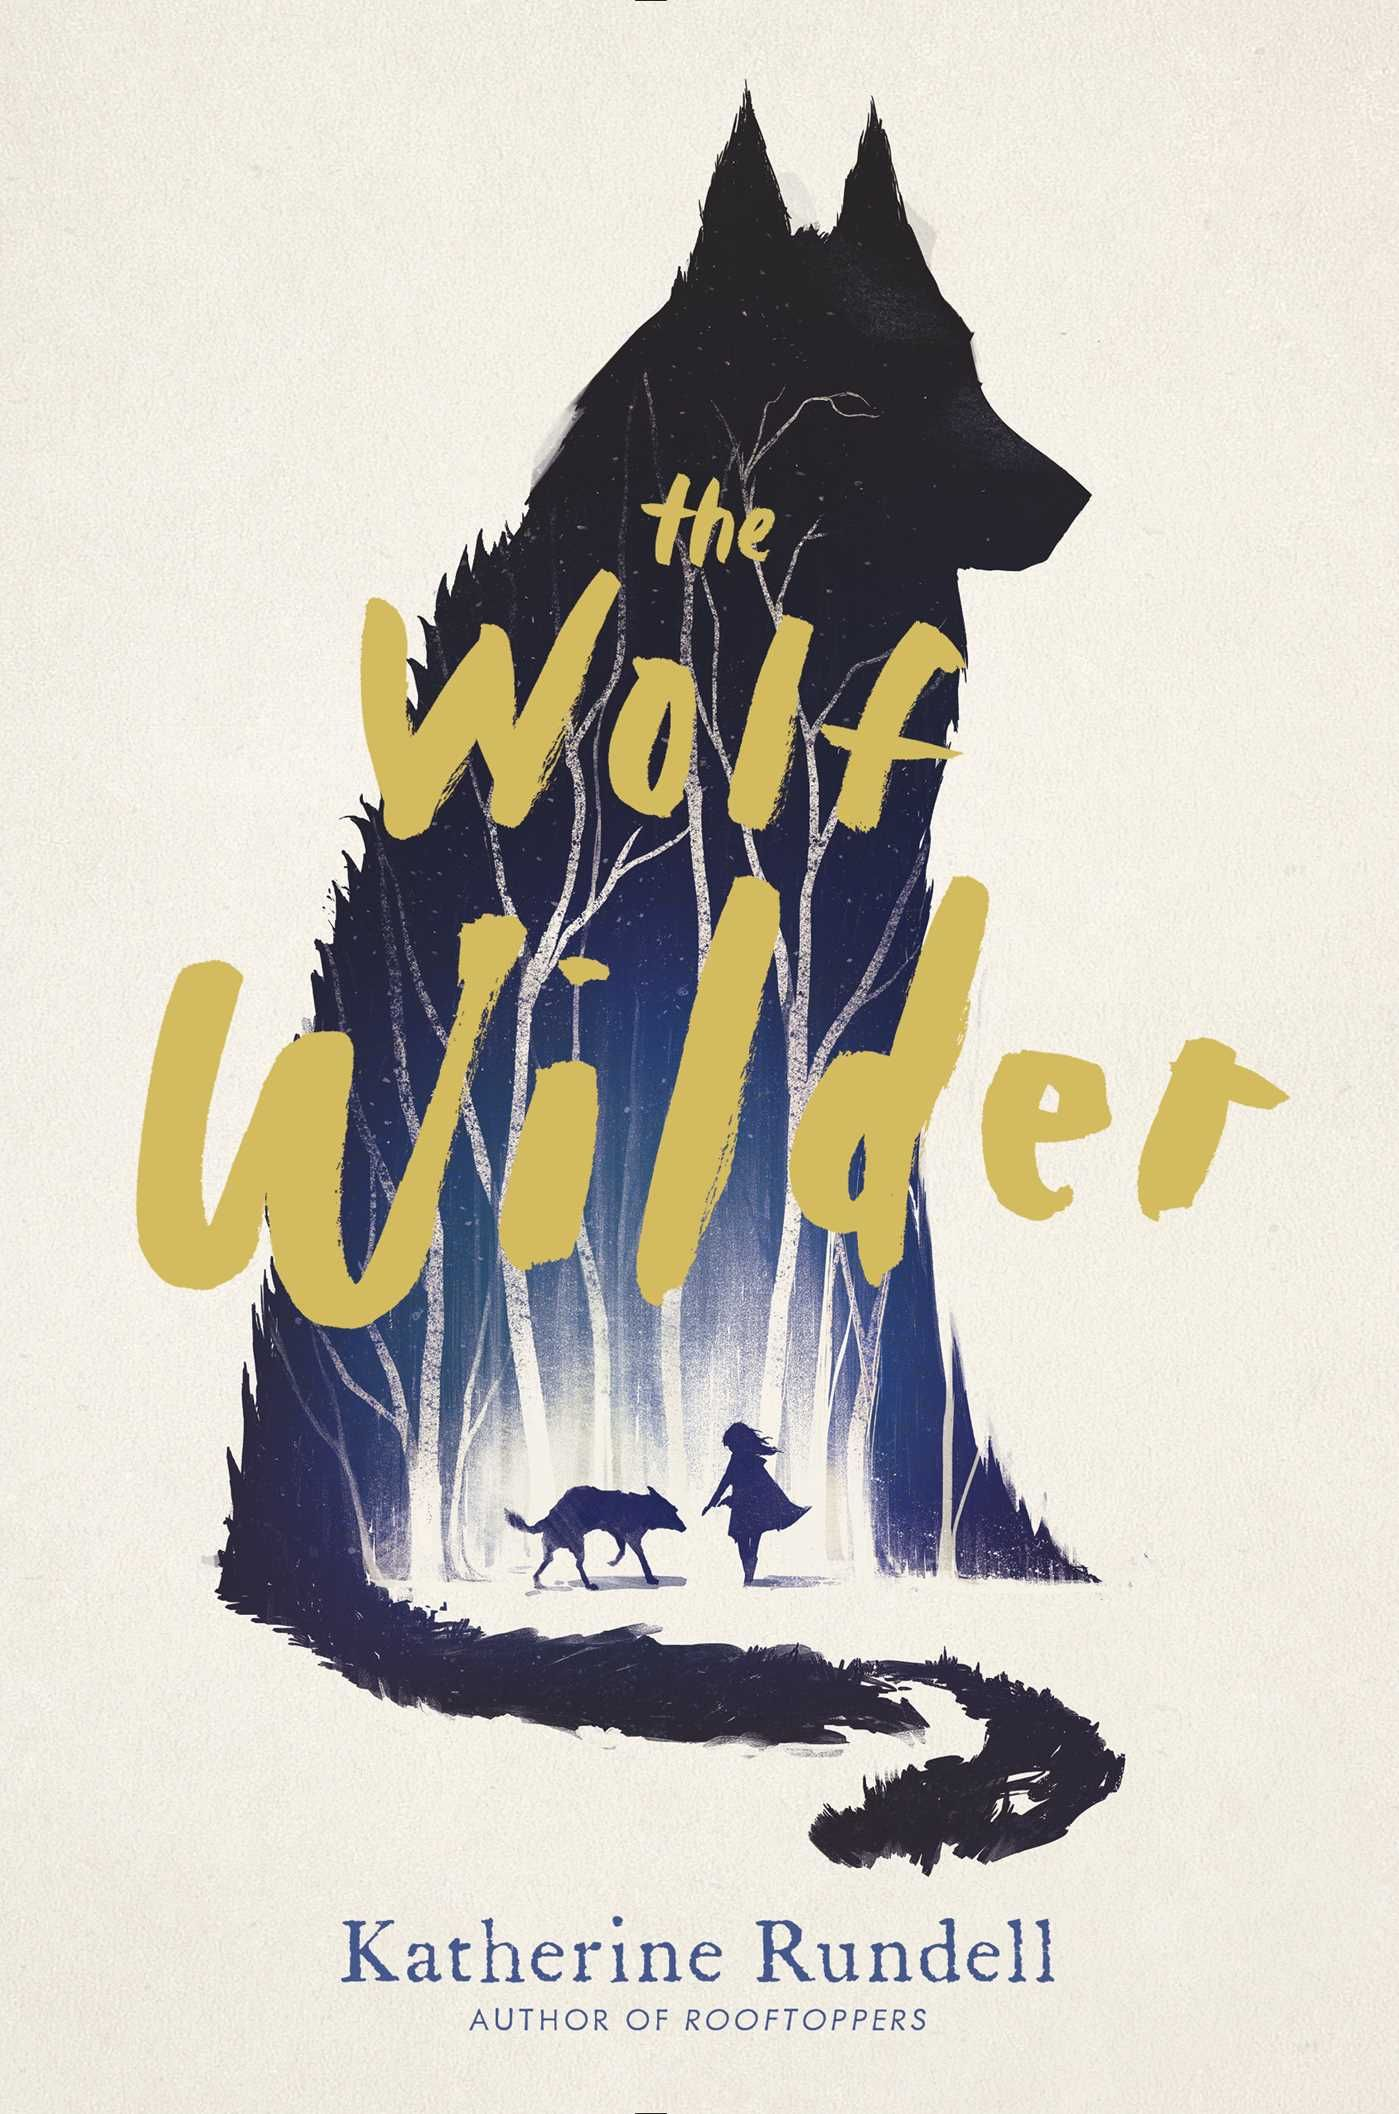 The Wolf Wilder By Katherine Rundell Book Cover Design Inspiration Creative Book Covers Cover Design Inspiration